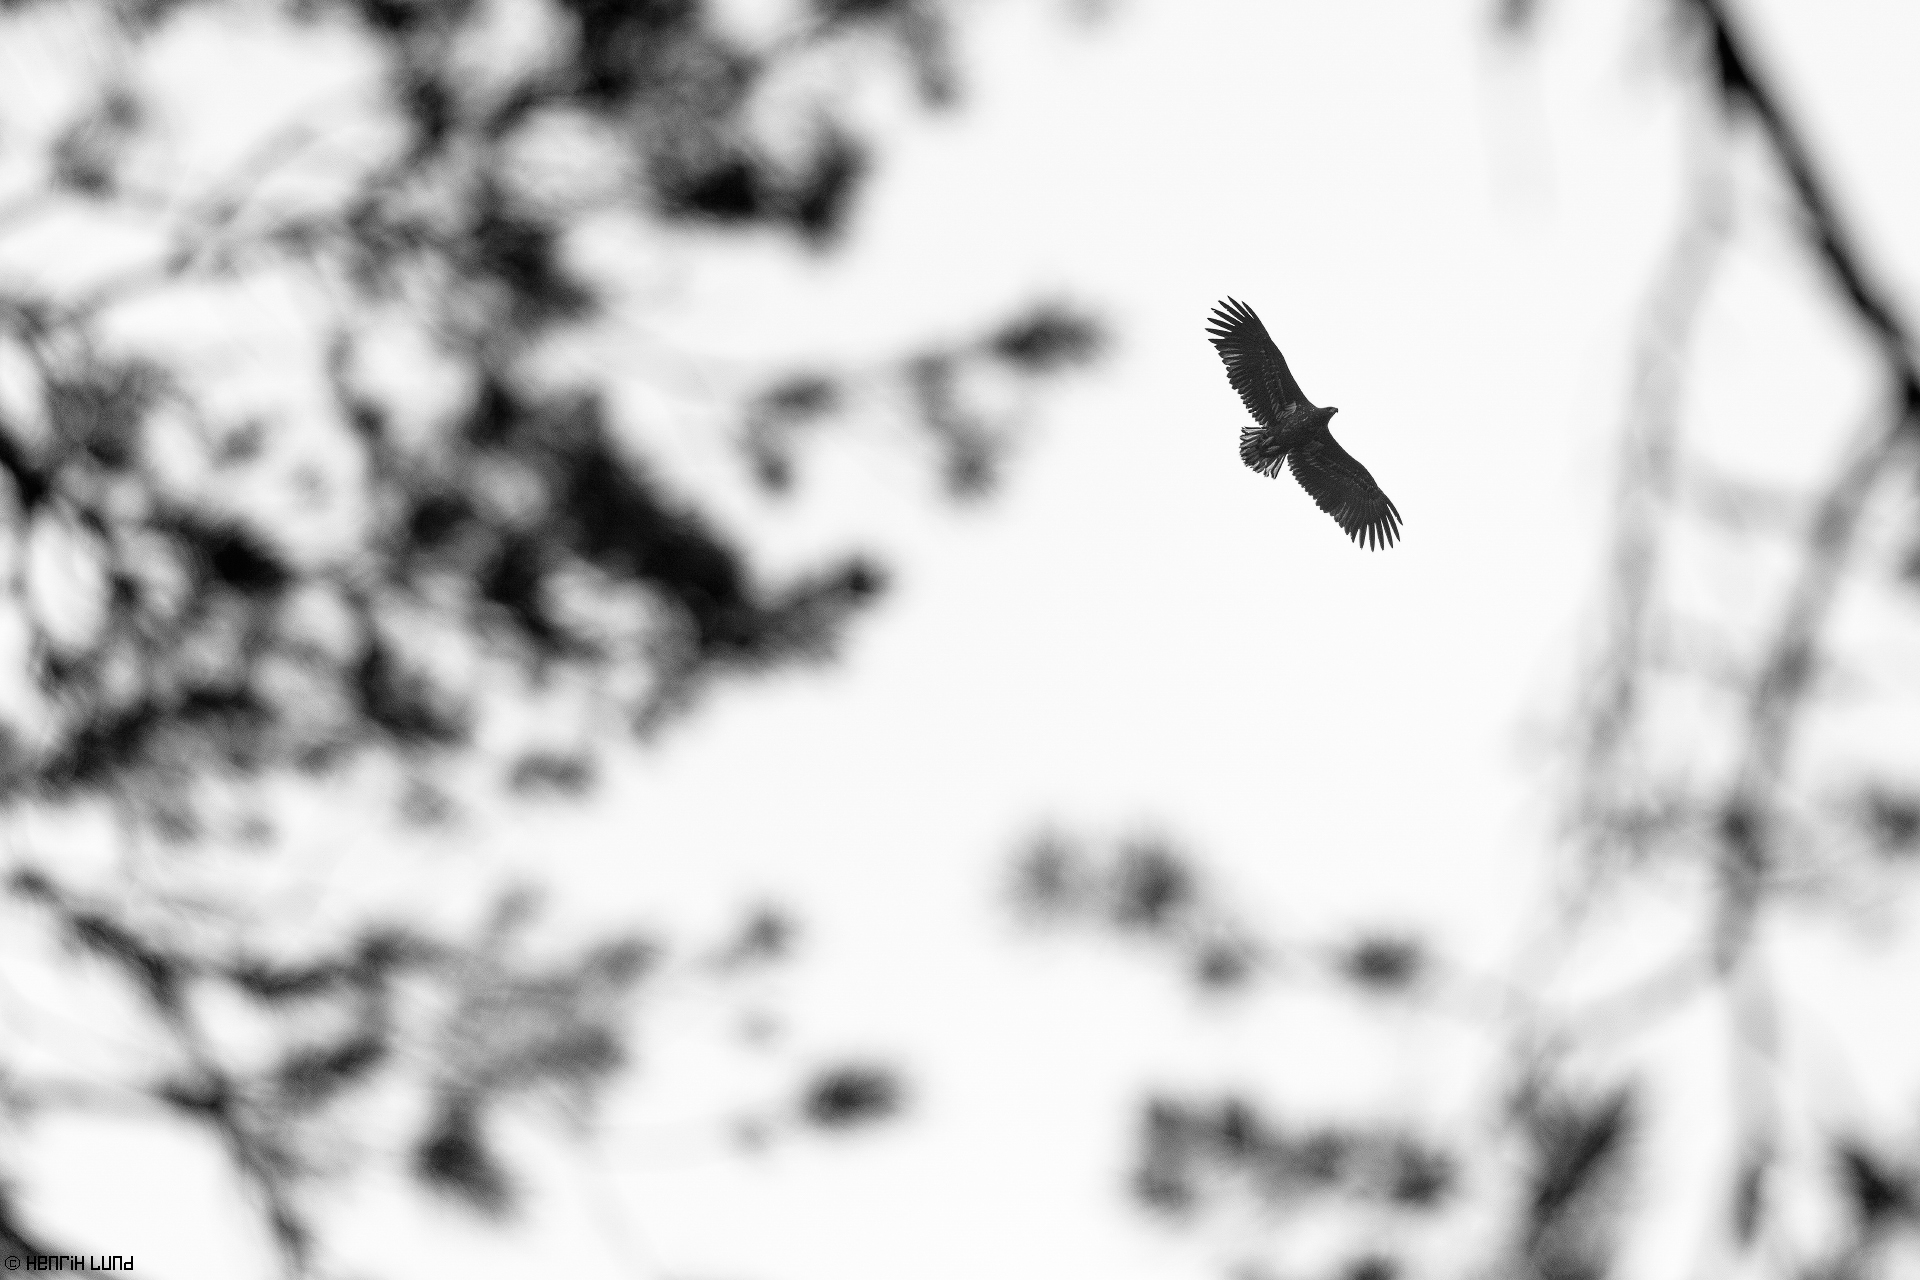 White-tailed eagle in majestic fly captured through the branches of the pine forest. Lappträsk, Finland, November 2015.